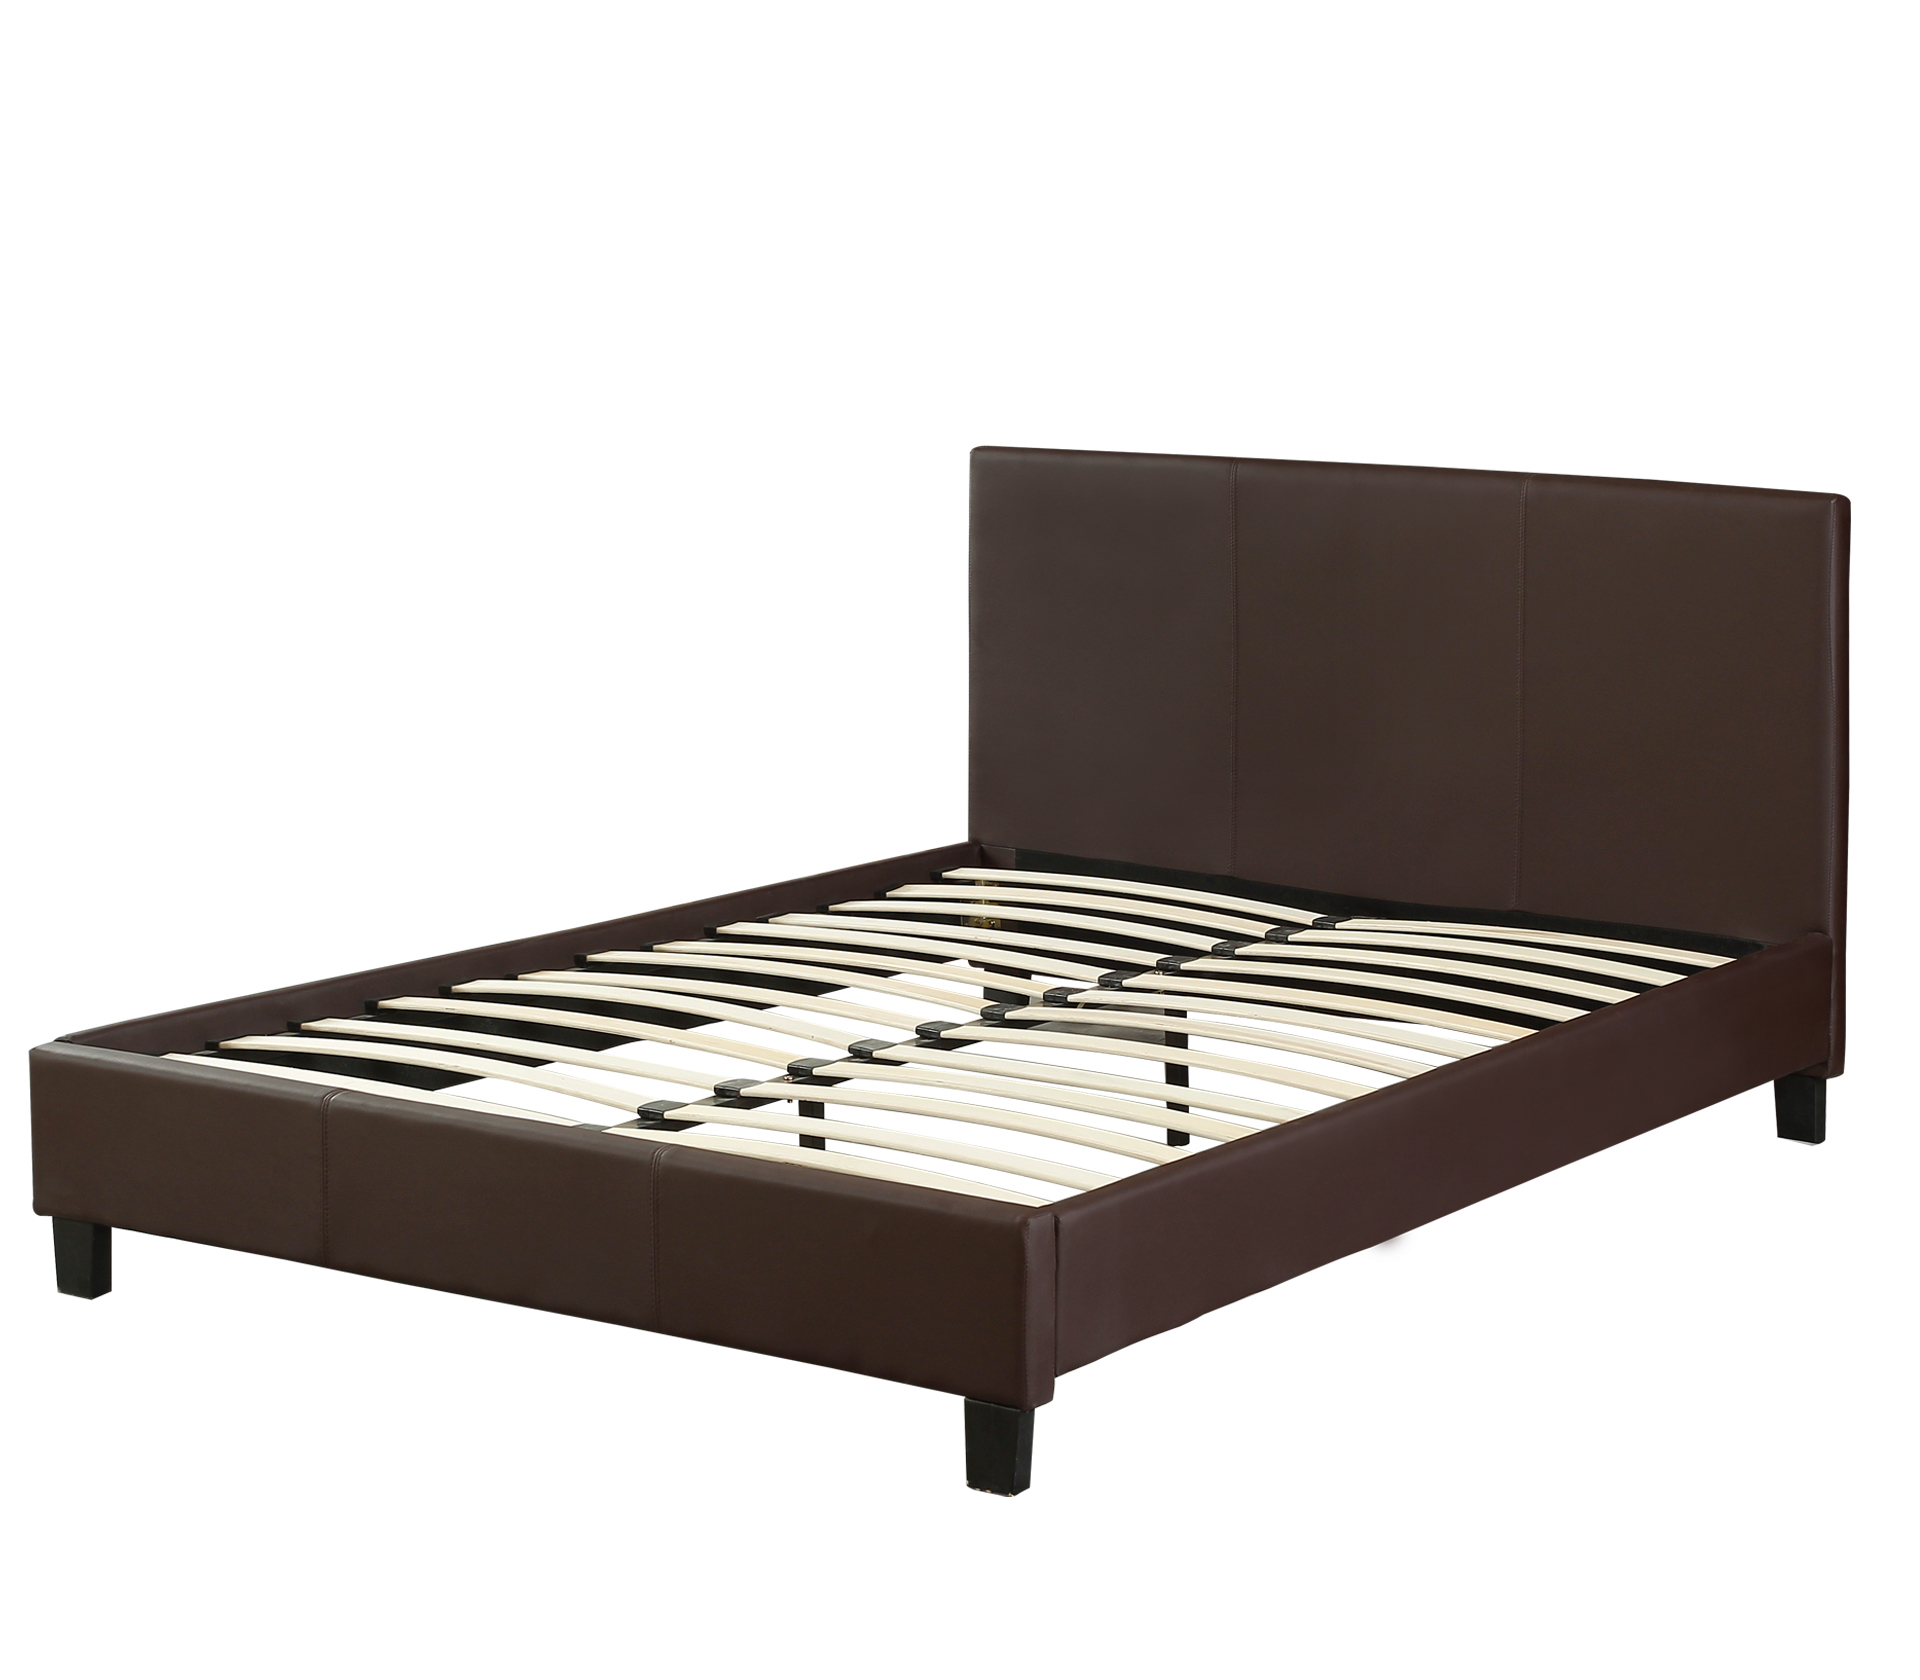 Brilliant Free Sample Modern Lift Up Hotel Led Single Double Queen King Size Black Leather Ottoman Bed Frame With Storage Buy What A Good Product Bedroom Pdpeps Interior Chair Design Pdpepsorg